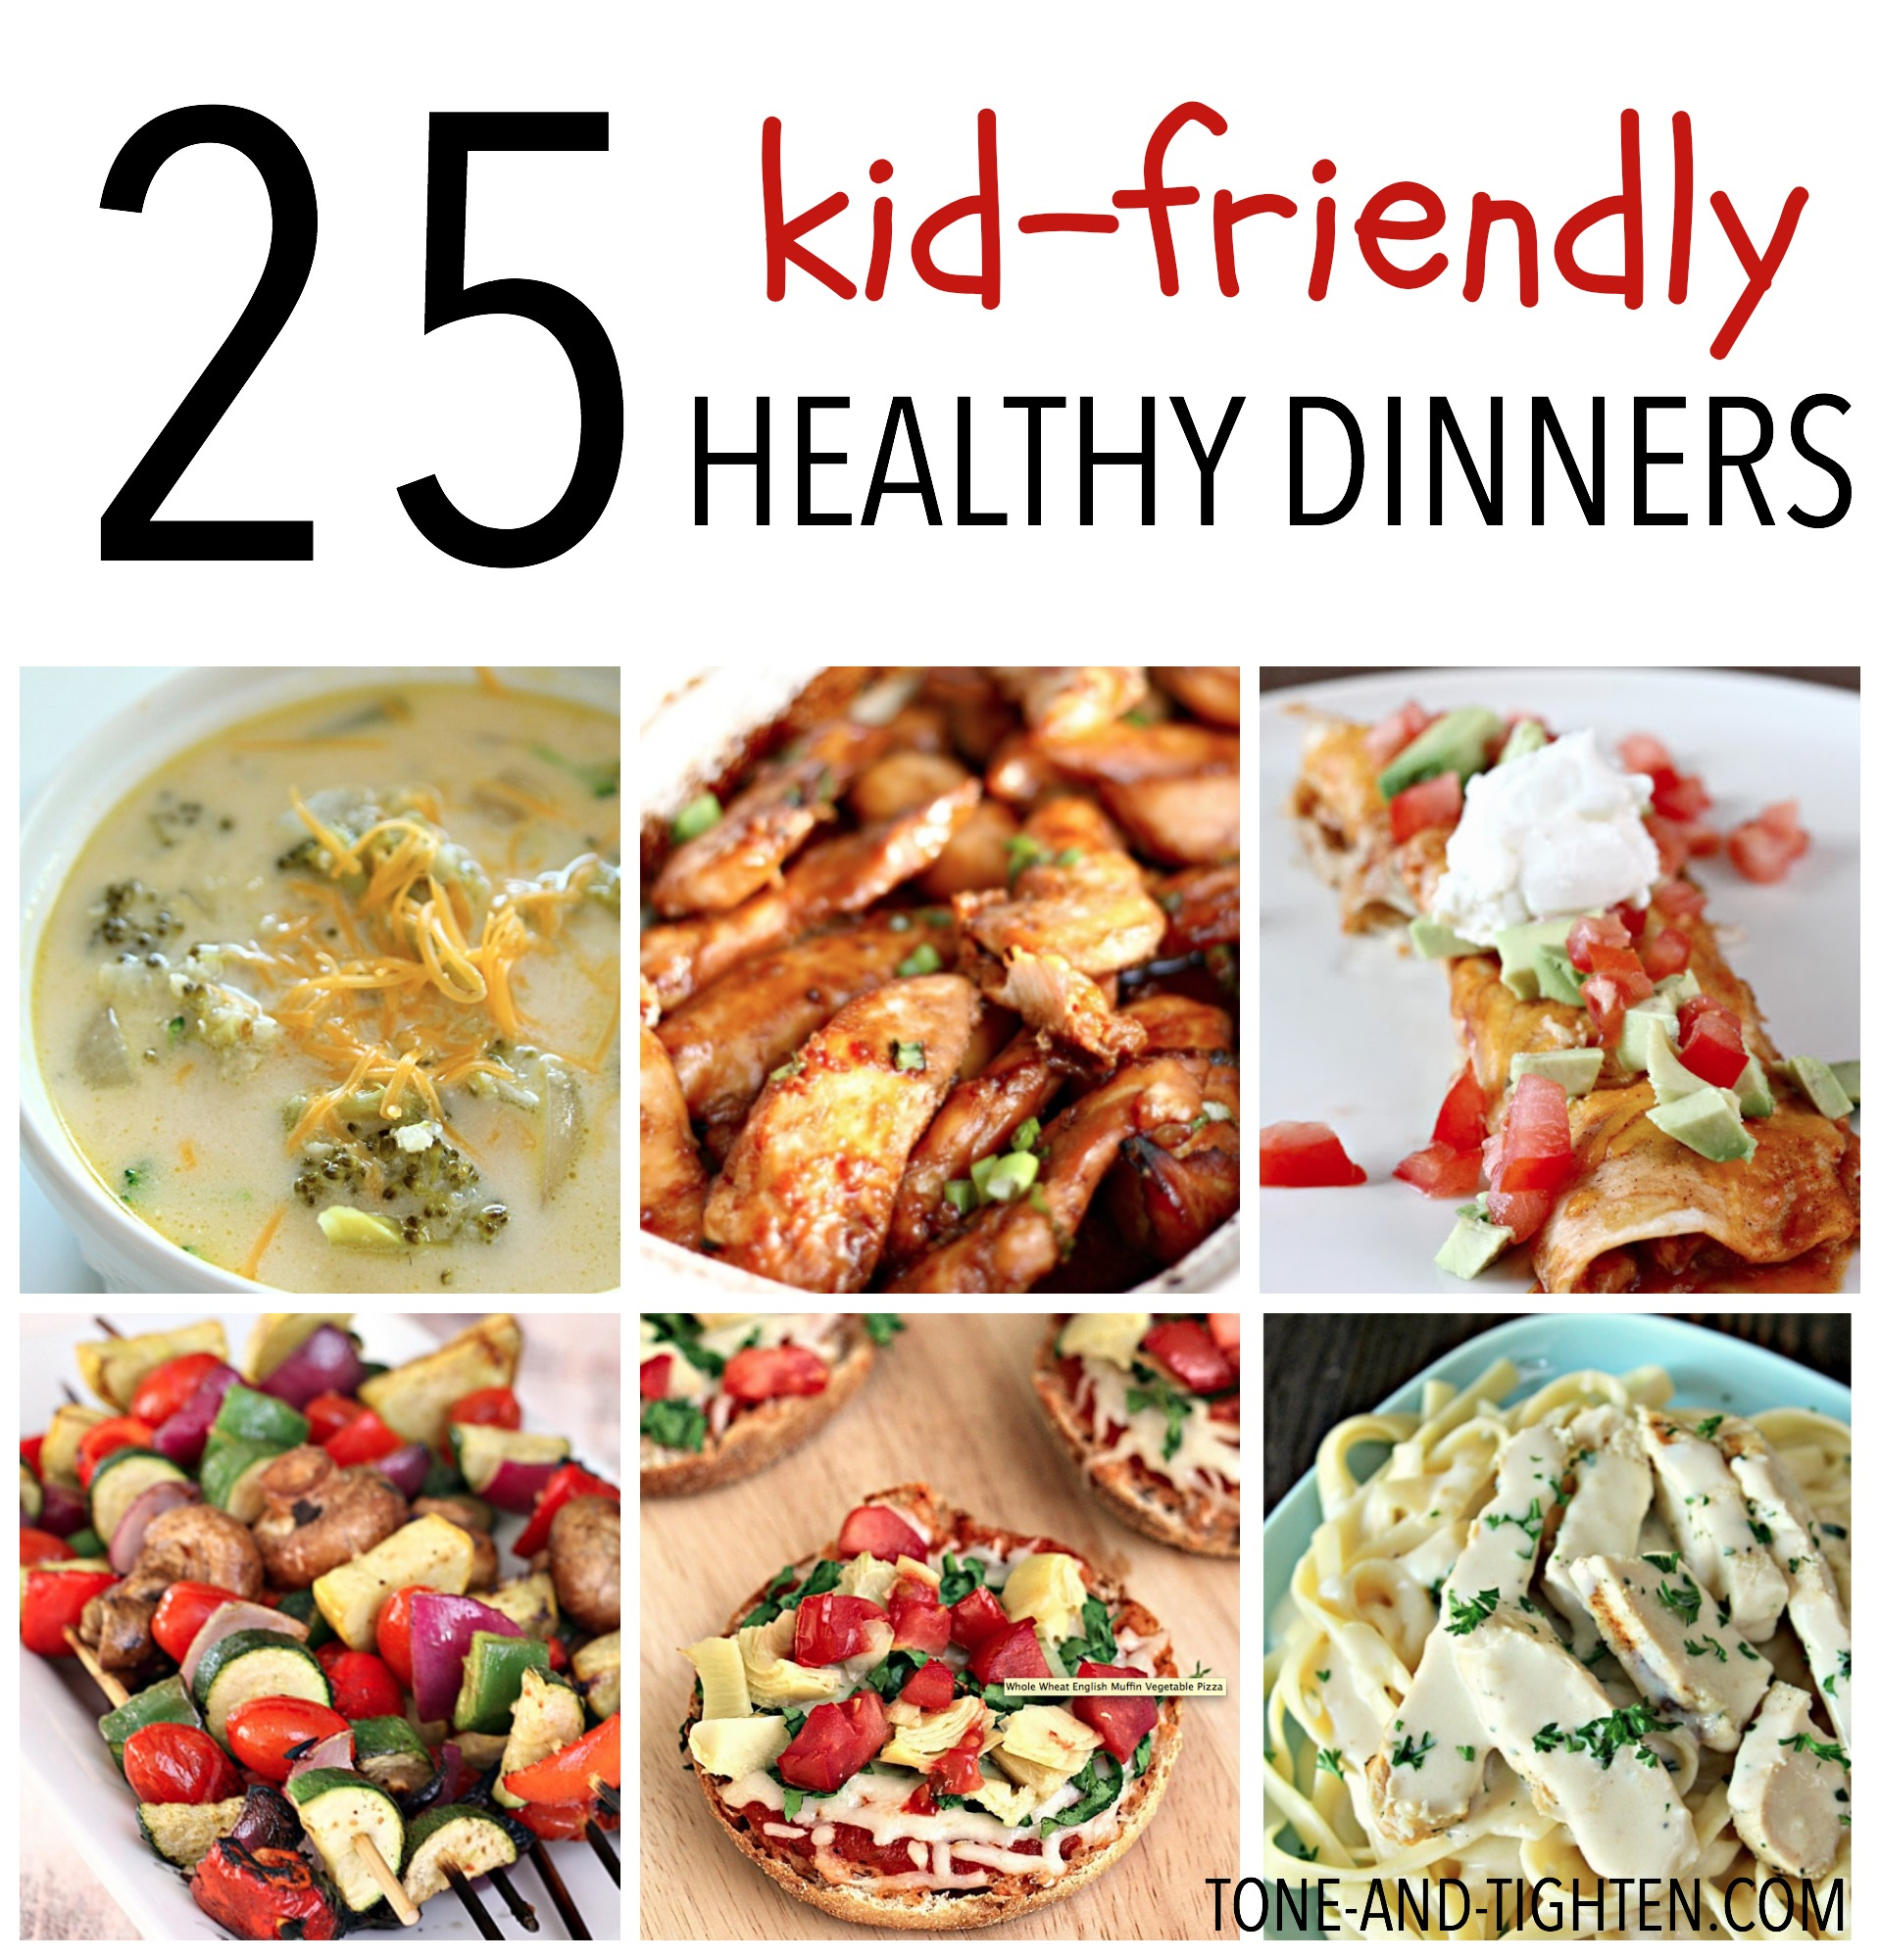 Find the best dinner ideas for kids and the entire family. Dinner recipes include favorites like easy chicken pot pie, maple-mustard chicken thighs and more from Food Network.